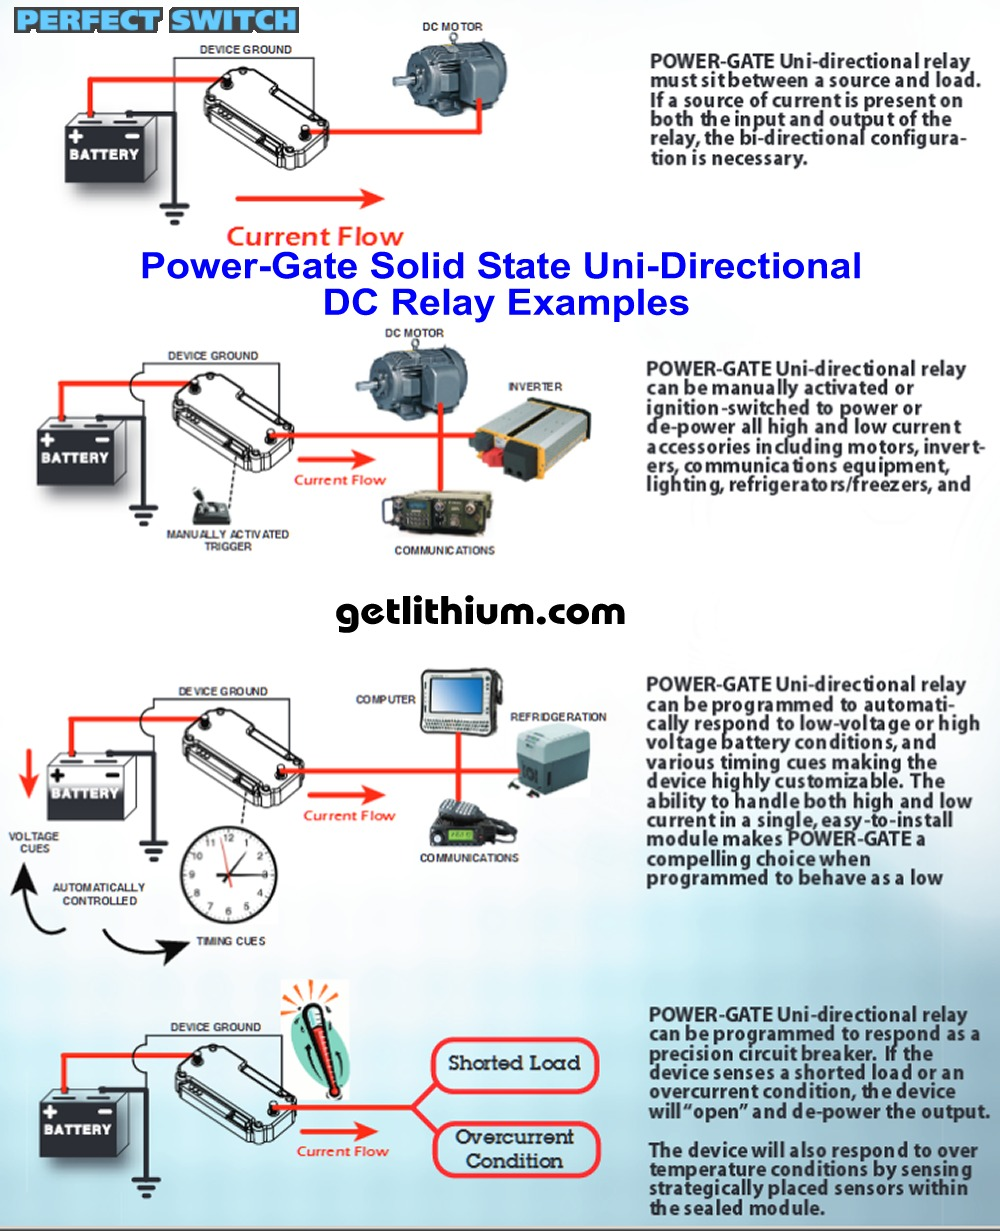 hight resolution of power gate uni directional dc relay applications